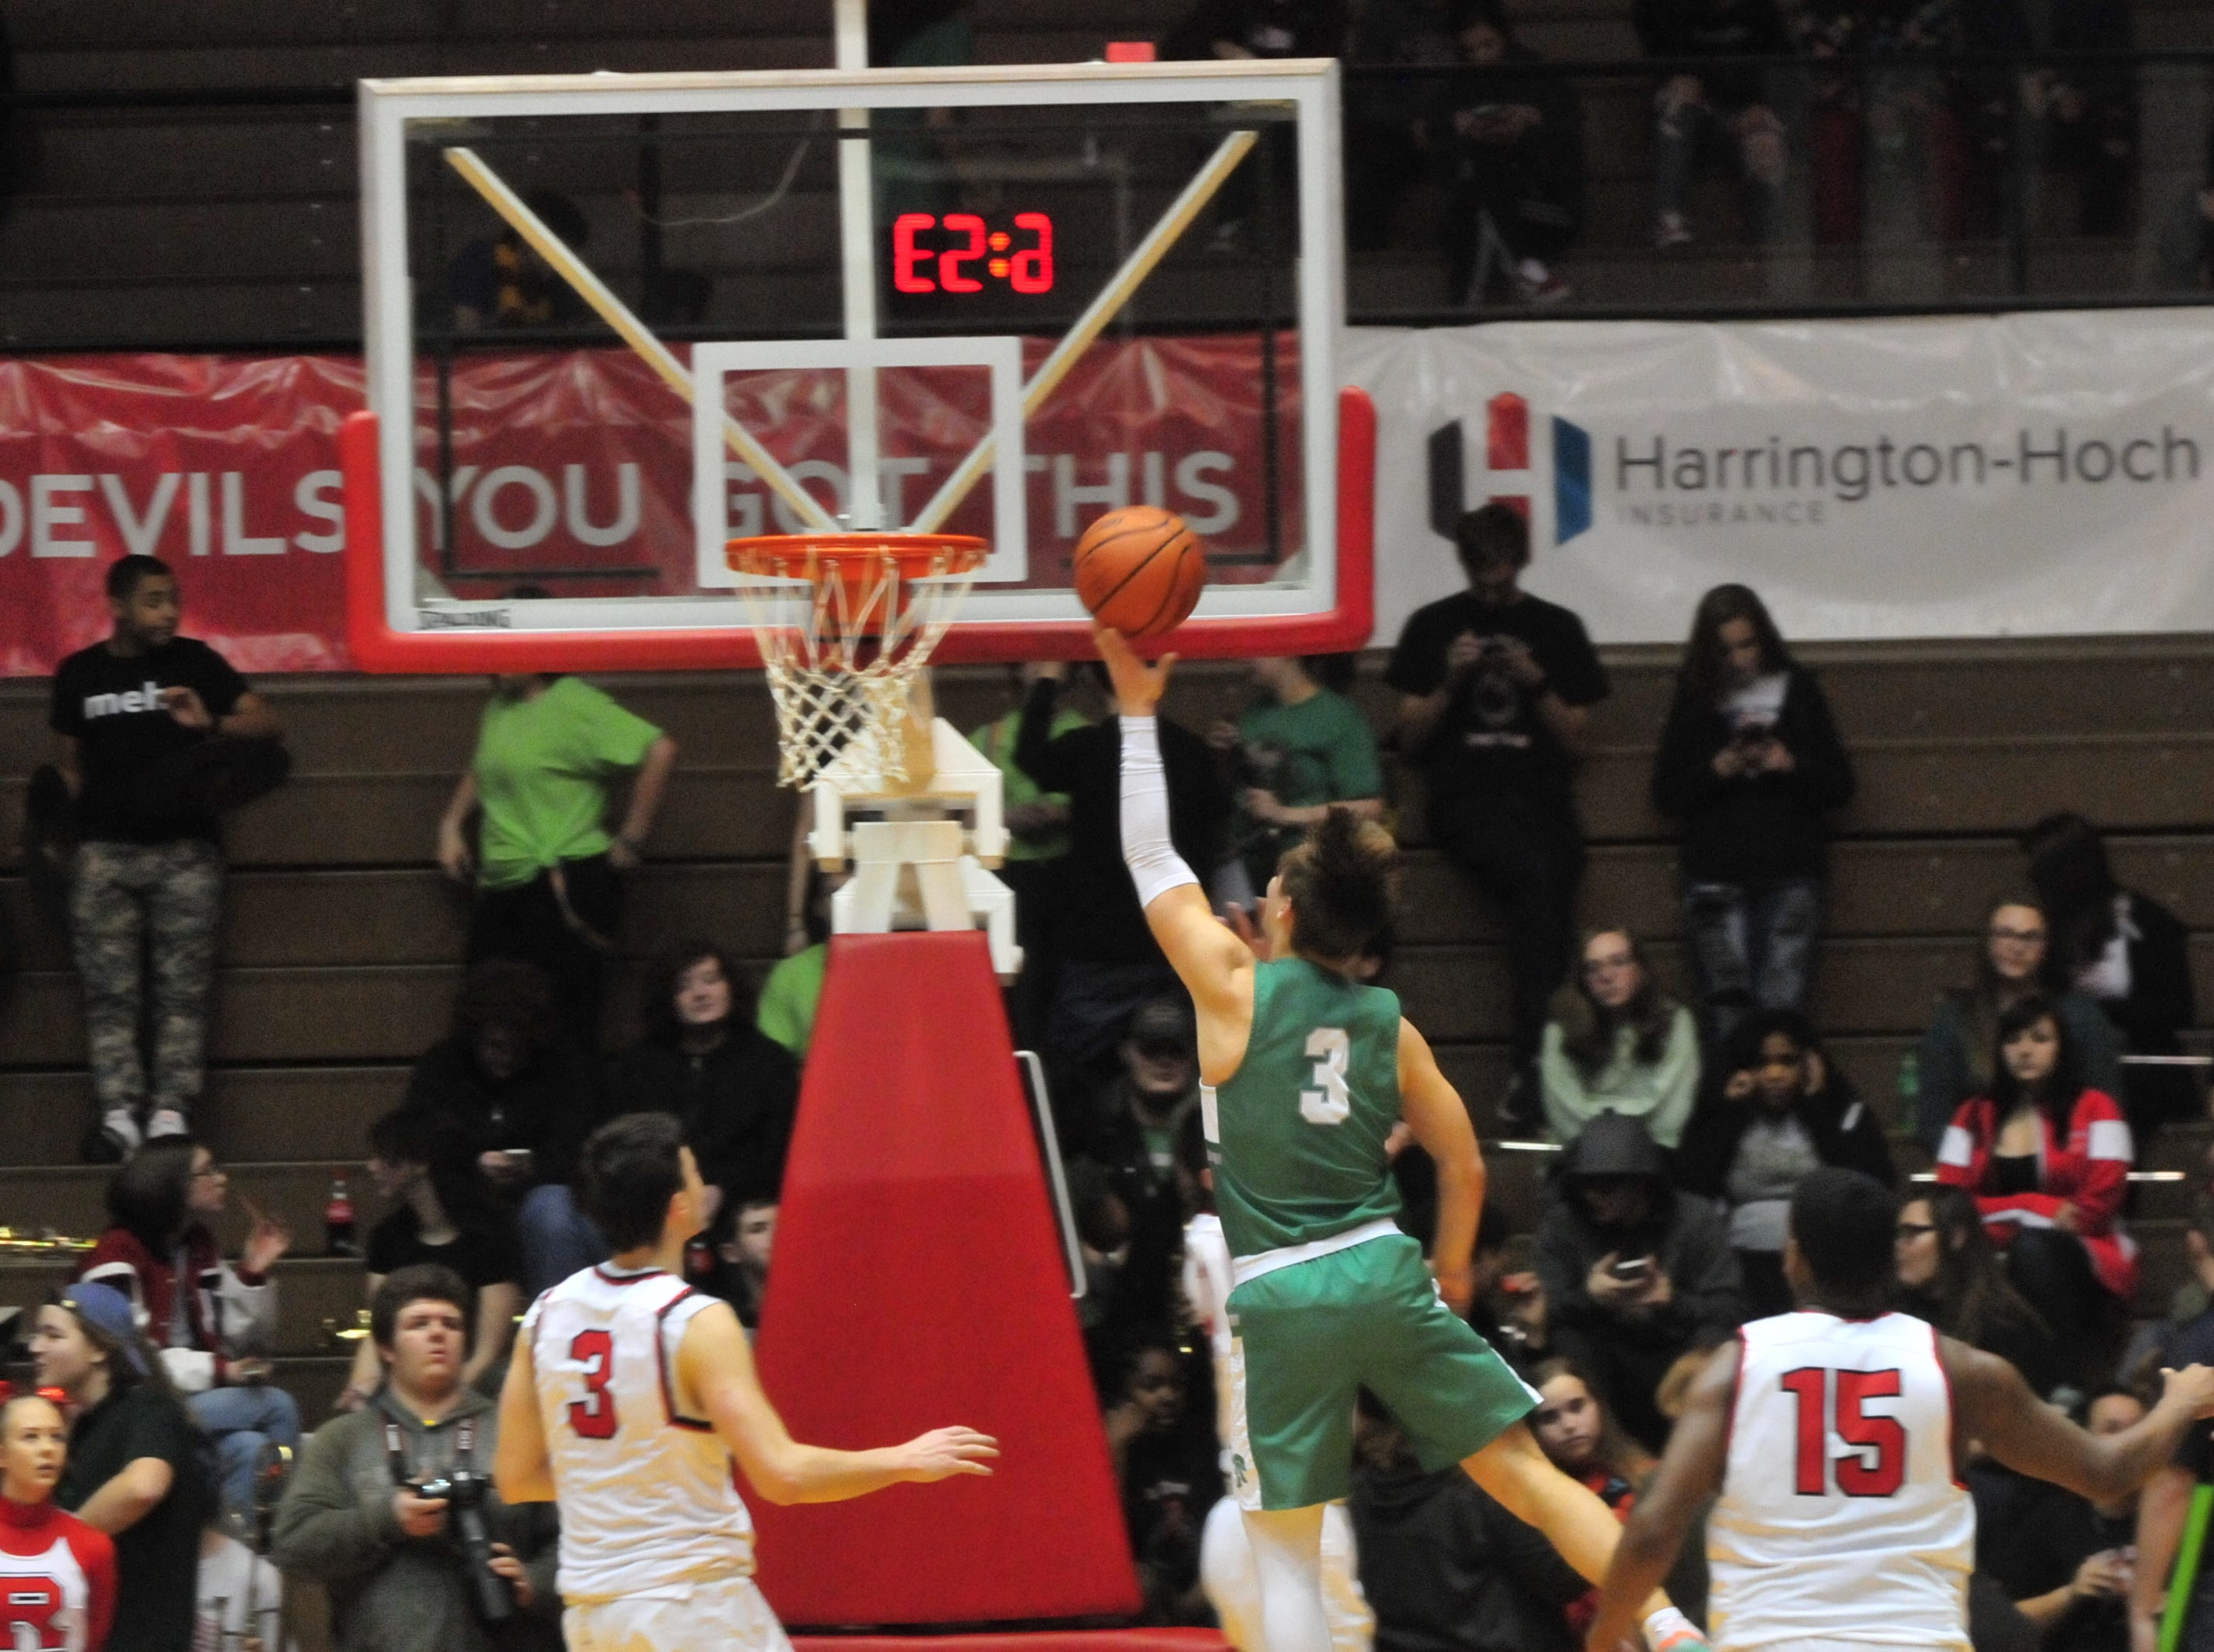 New Castle's Luke Bumbalough (3) goes for a layup during a boys basketball game against Richmond at Tiernan Center Friday, Jan. 4, 2019.